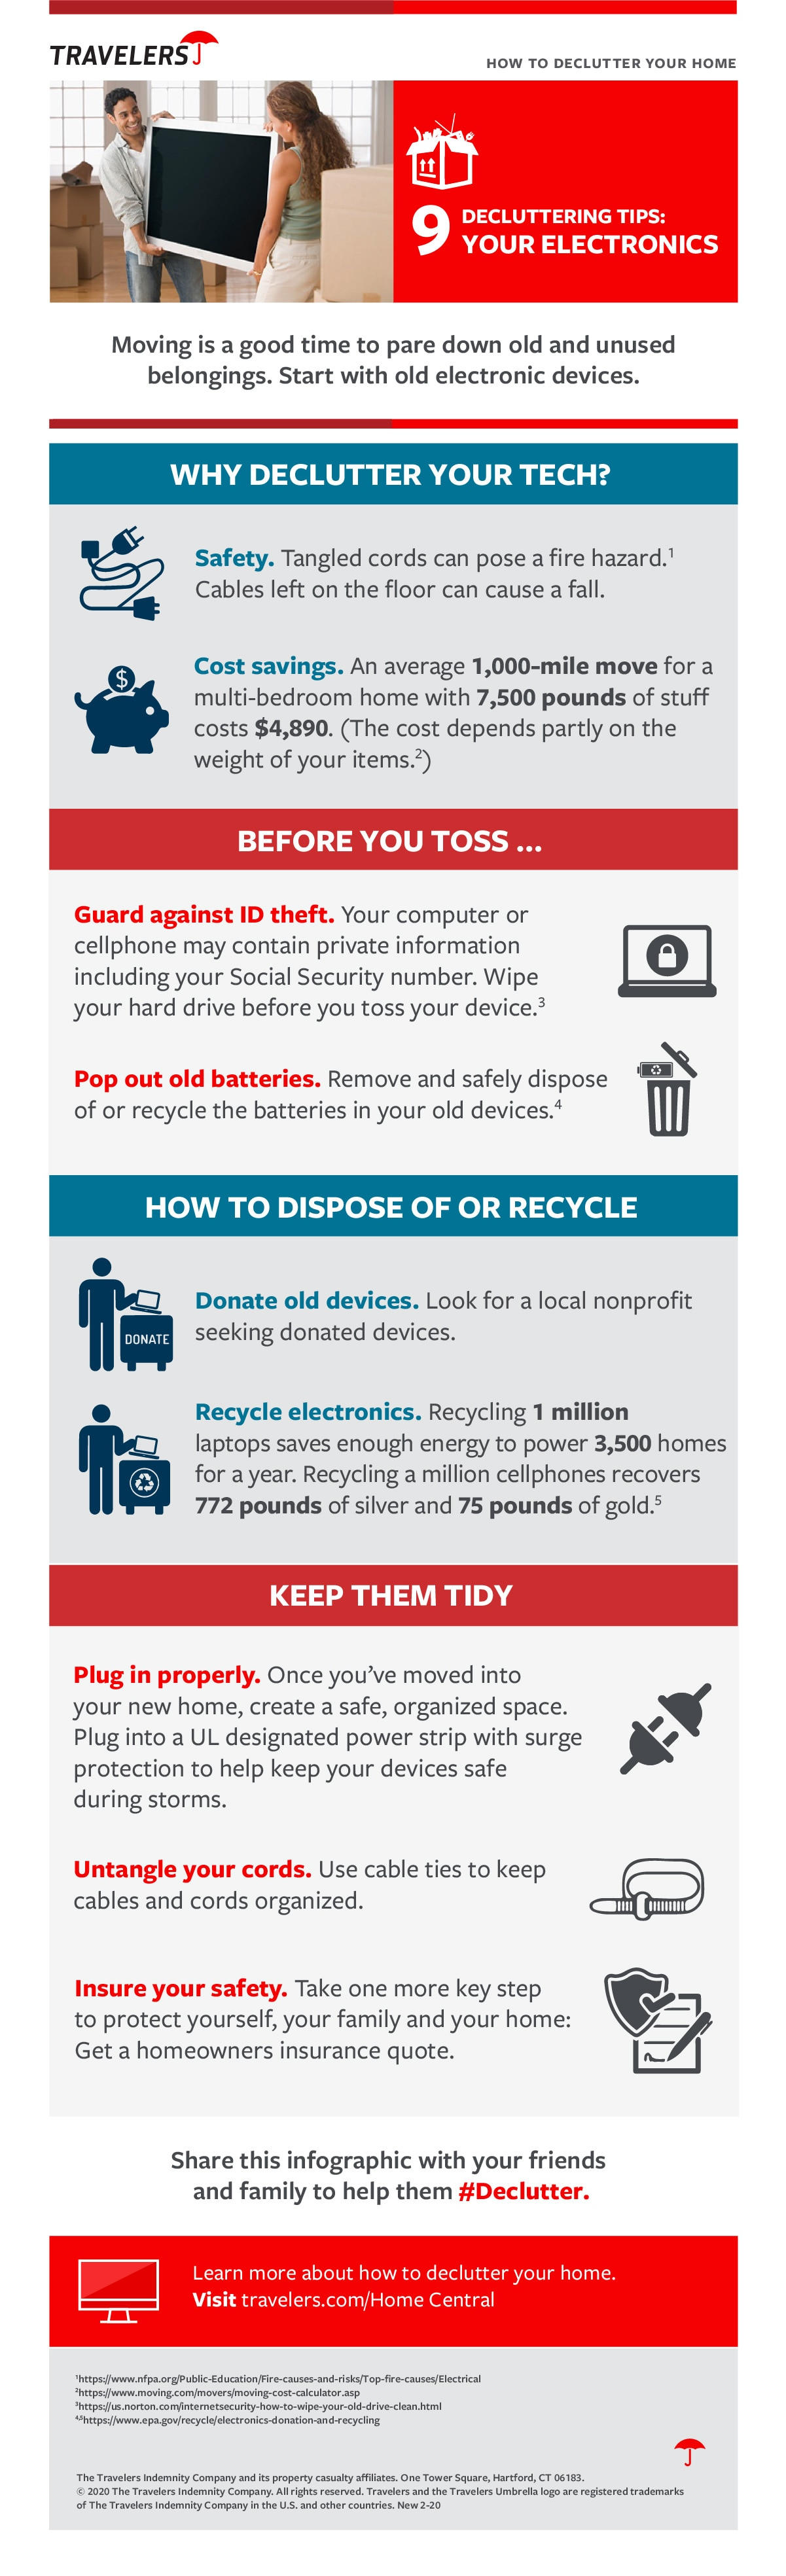 inforgraphic for 9 tips on how to declutter your electronics